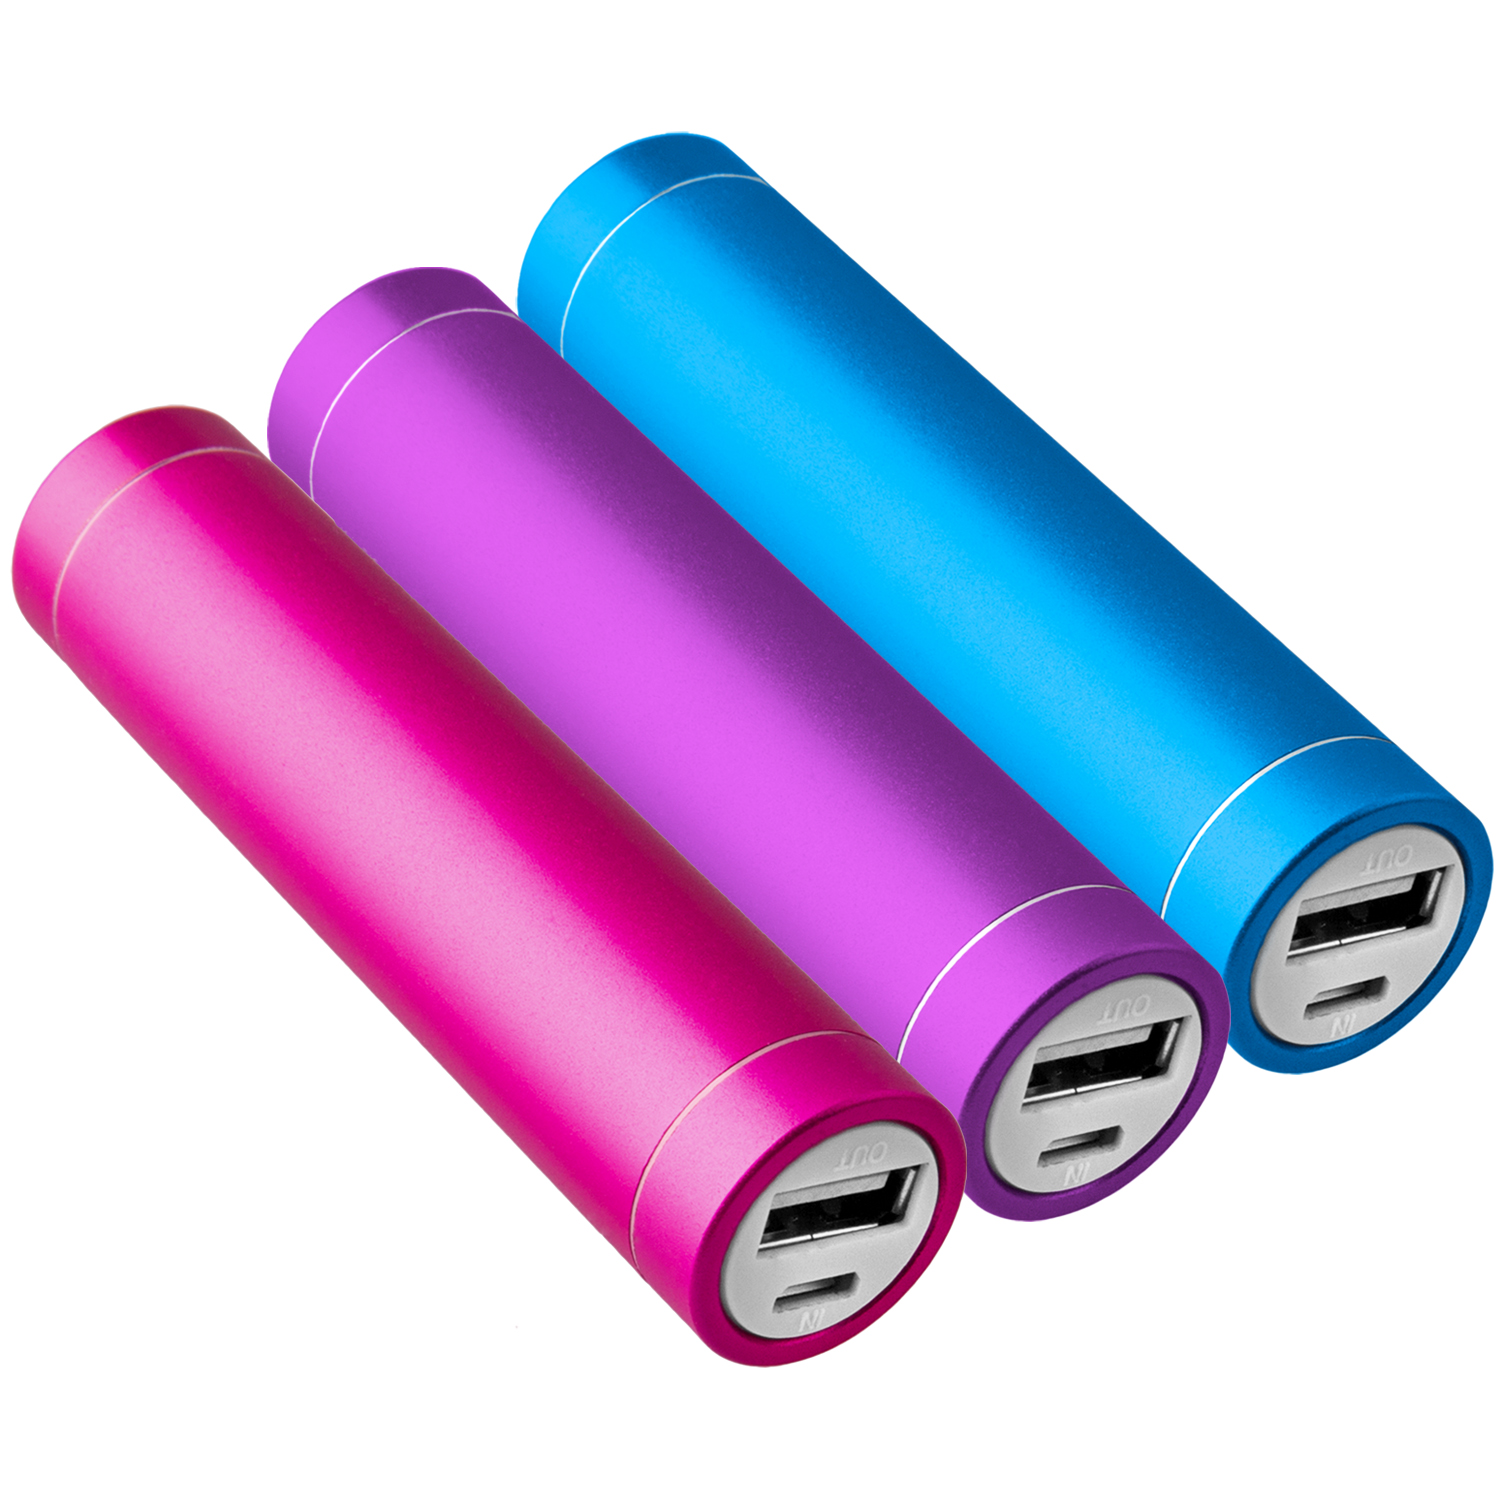 3x-Power-Bank-Akku-2600-mAh-Ladegeraet-extern-USB-iPhone-pink-blau-lila-NT003